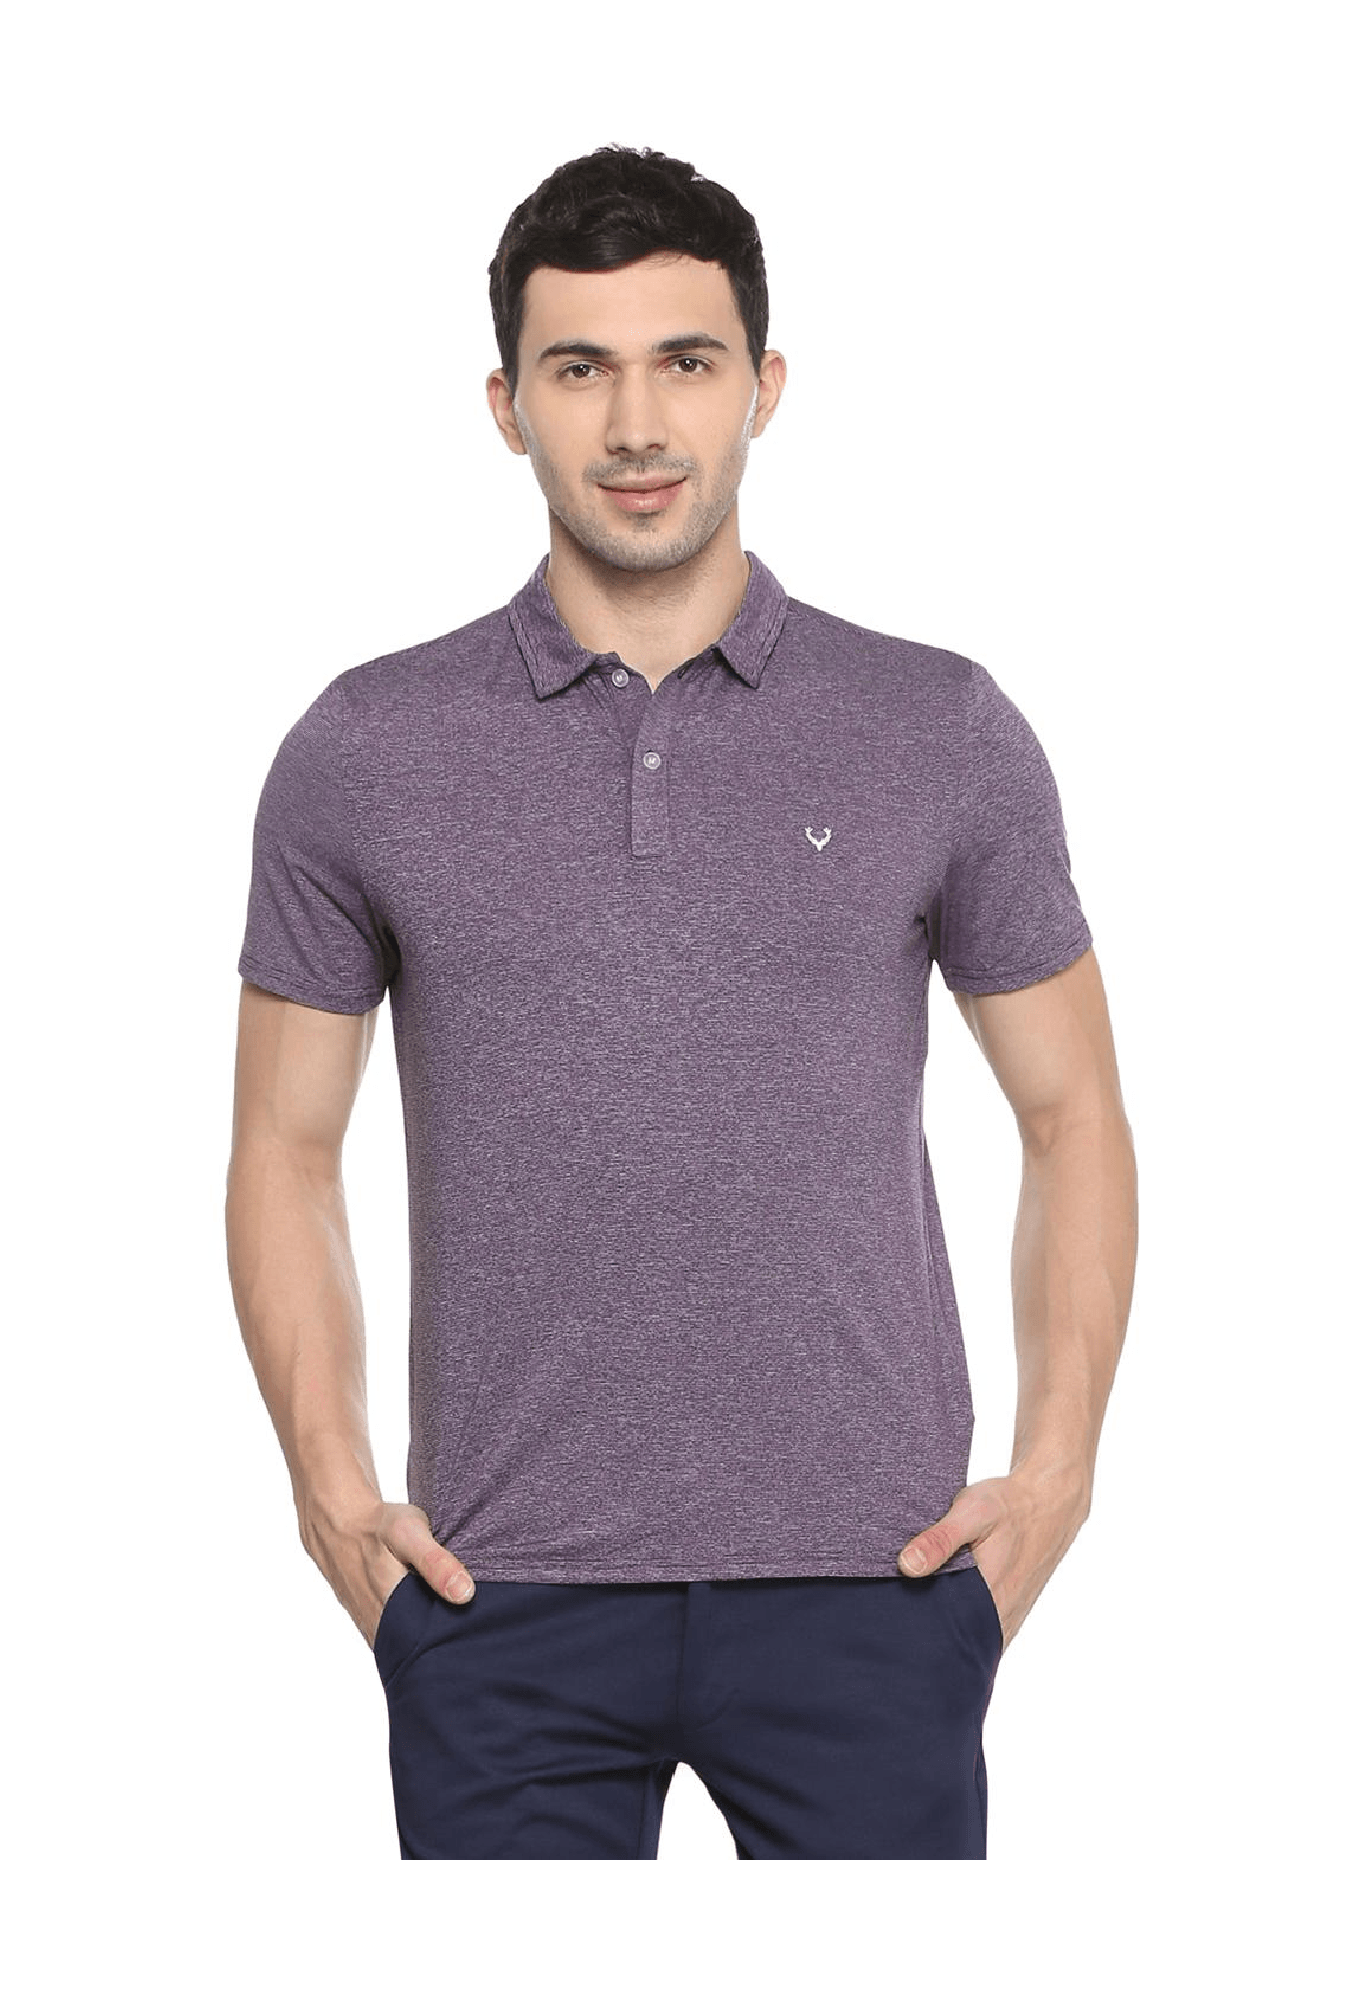 Buy Allen Solly Purple Regular Fit Wimbledon Polo T Shirt For Men